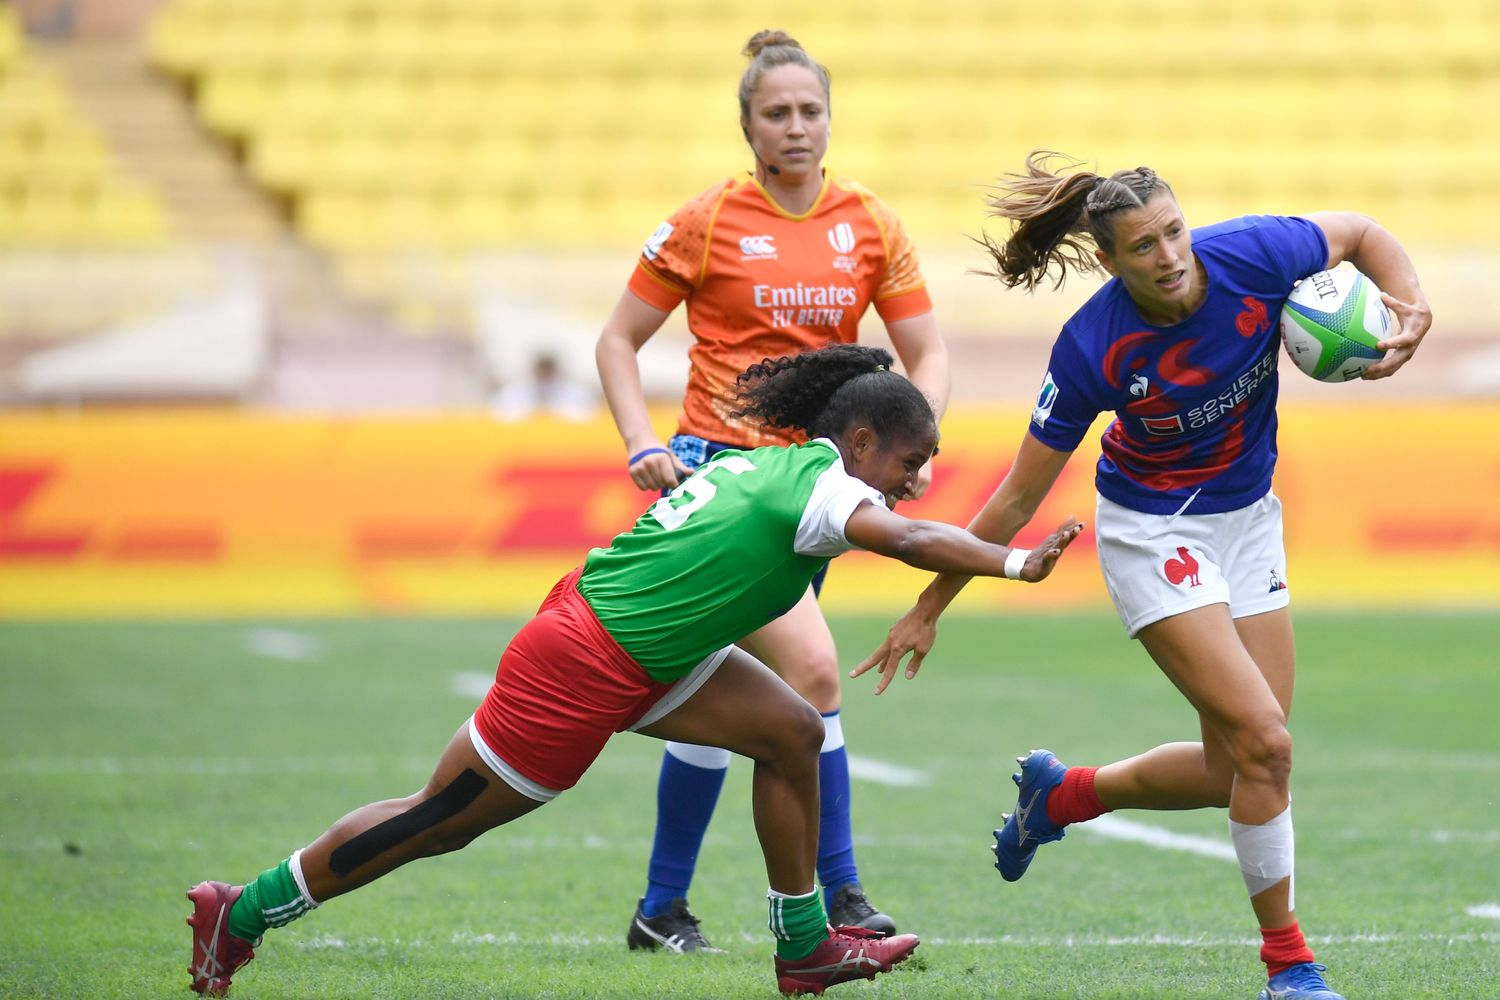 World Rugby Sevens Repechage - Day Two